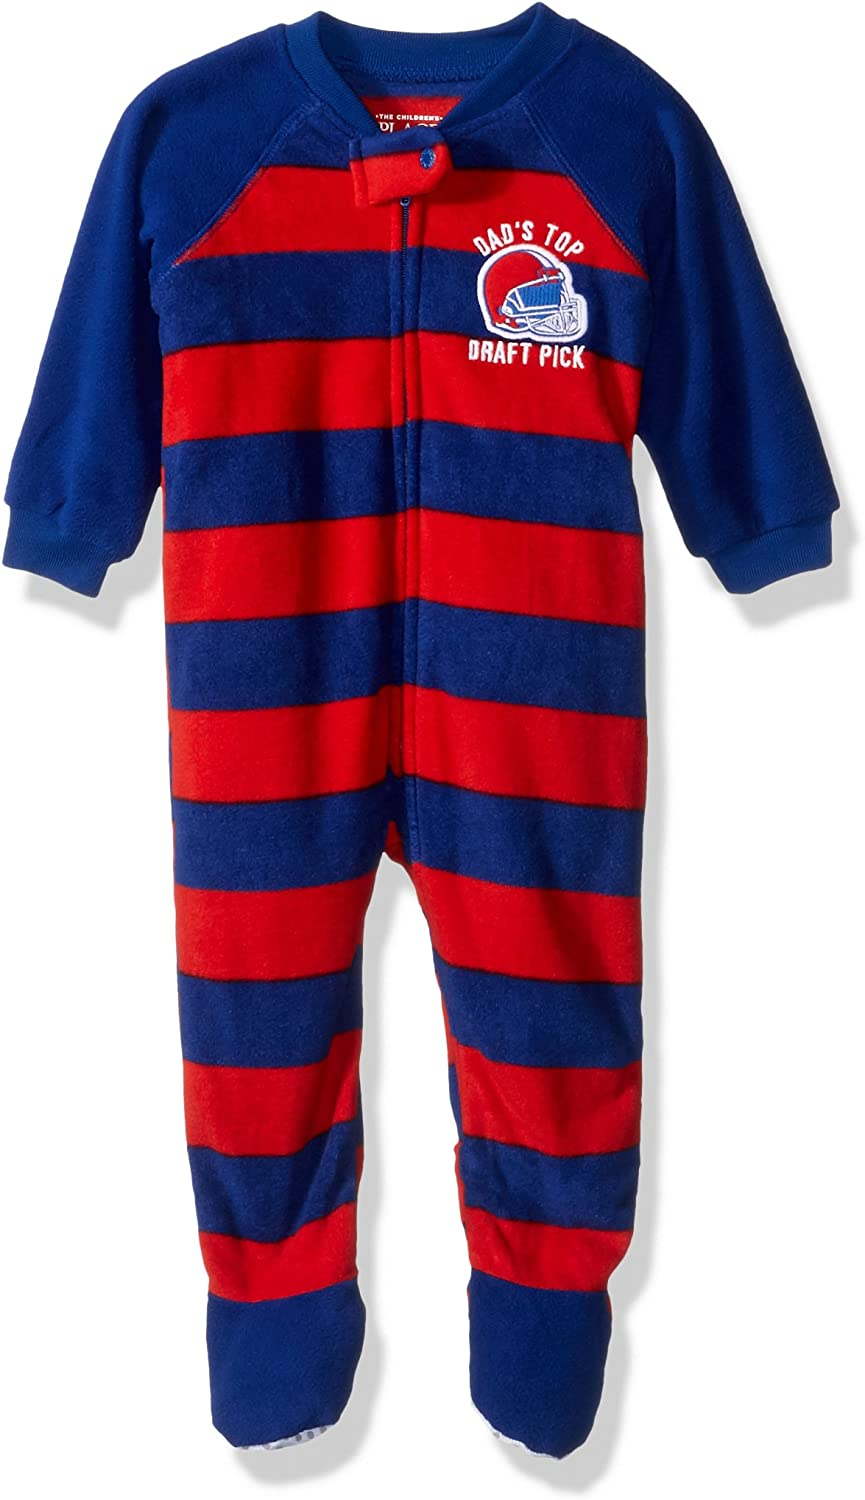 The Children's Place Baby Boys' Stretchie Pajamas